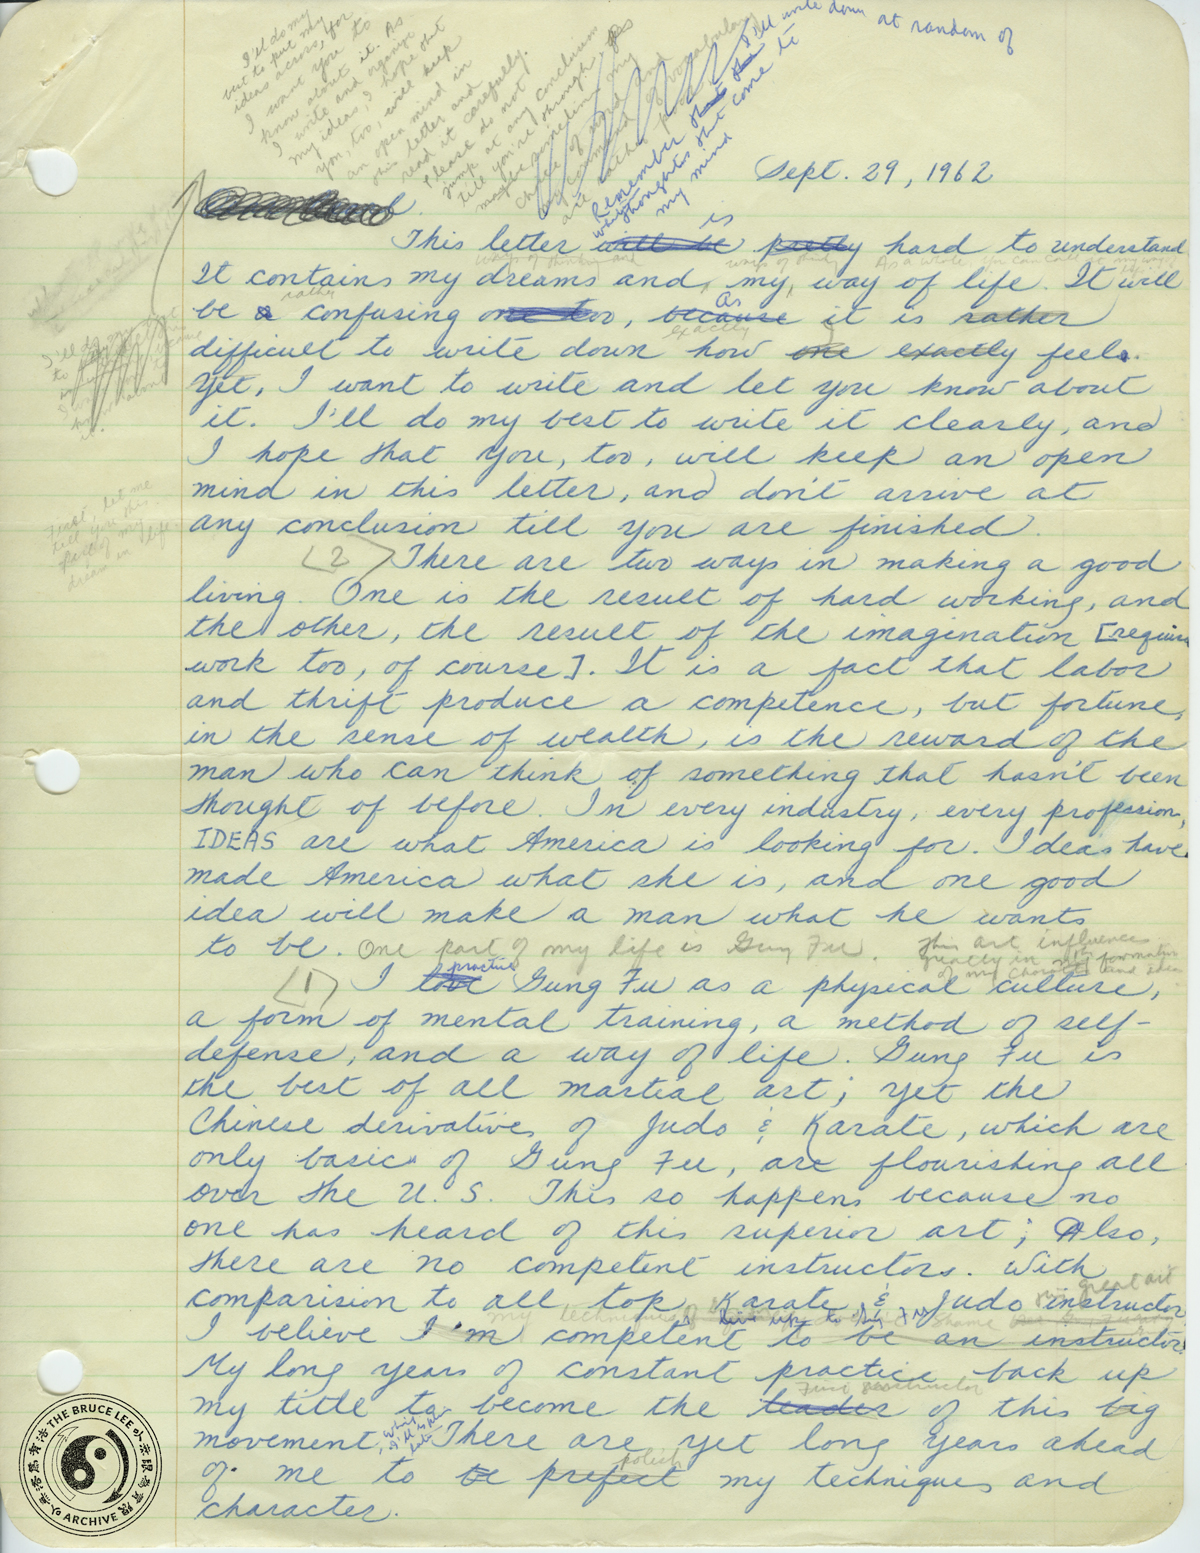 Letter-to-Pearl-draft-pg.1-archive.jpg